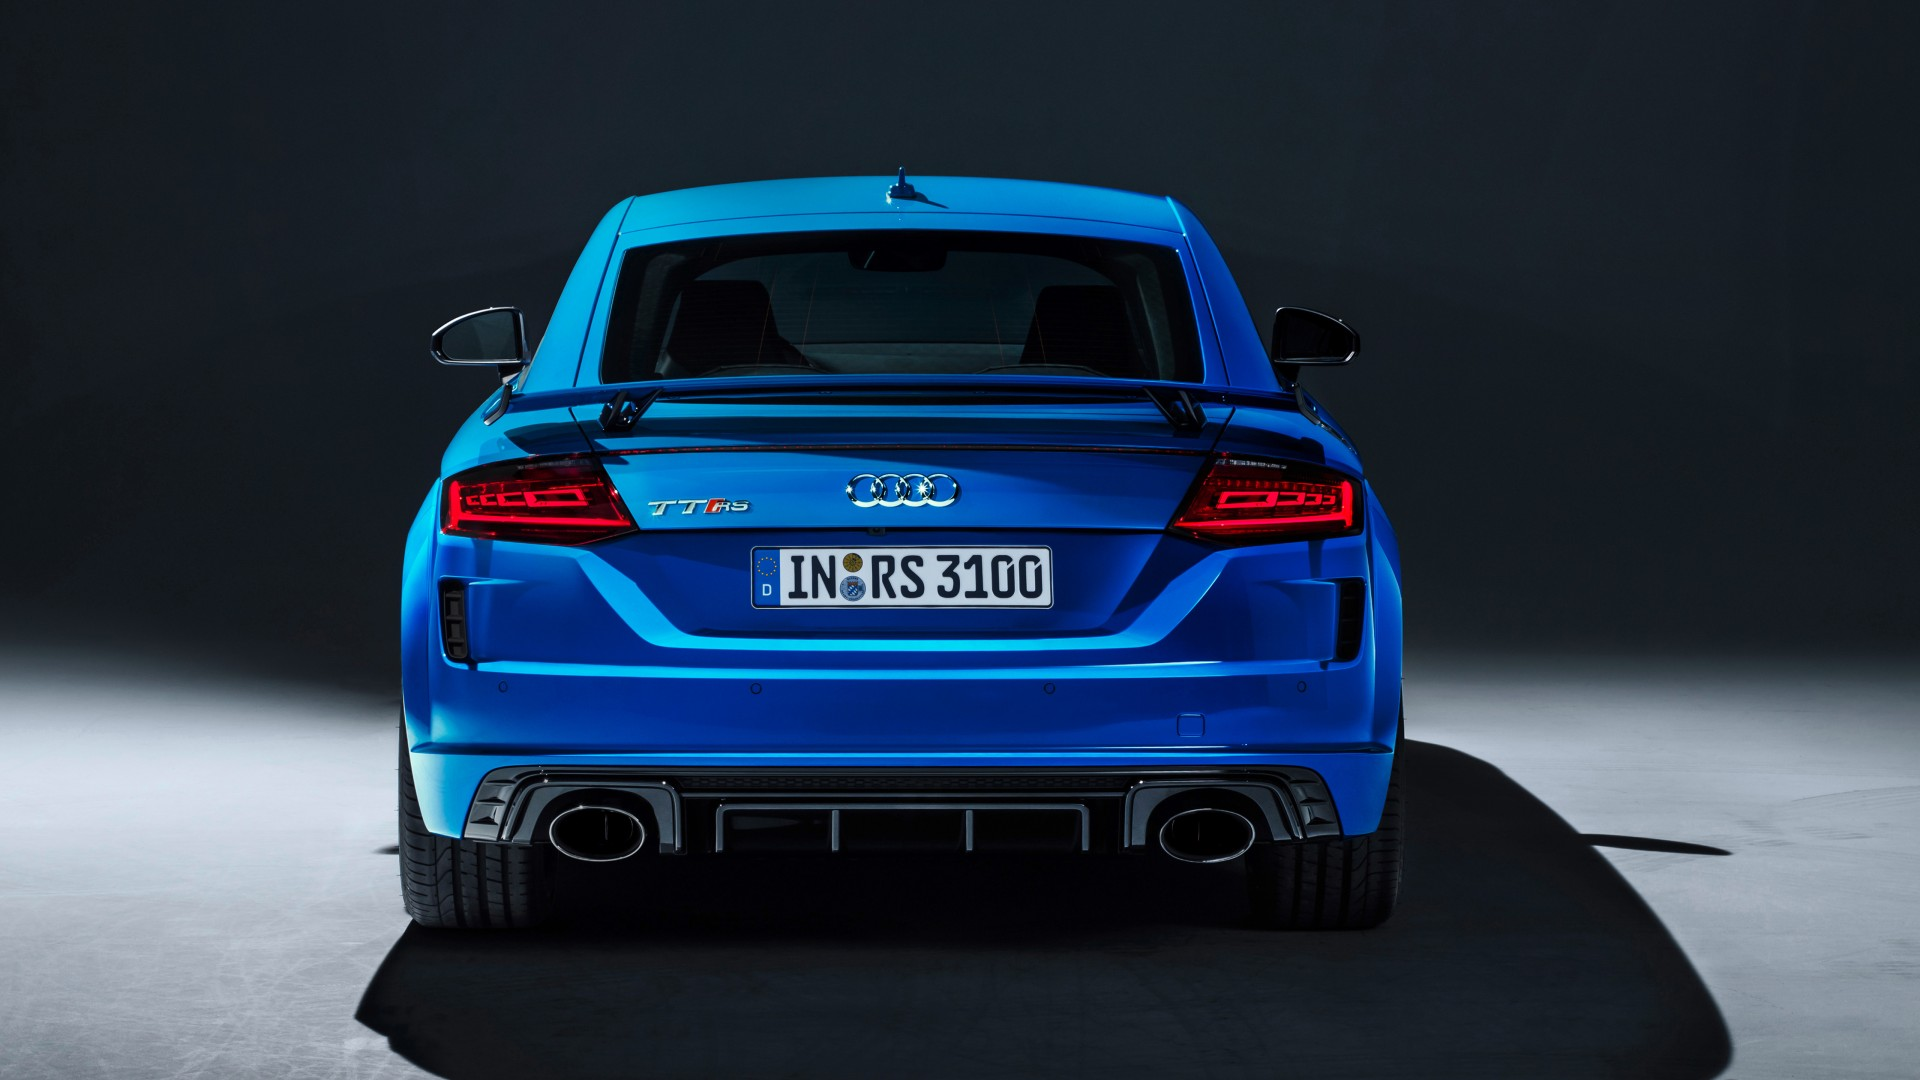 Audi TT RS Coupe 2019 5K Wallpaper | HD Car Wallpapers ...